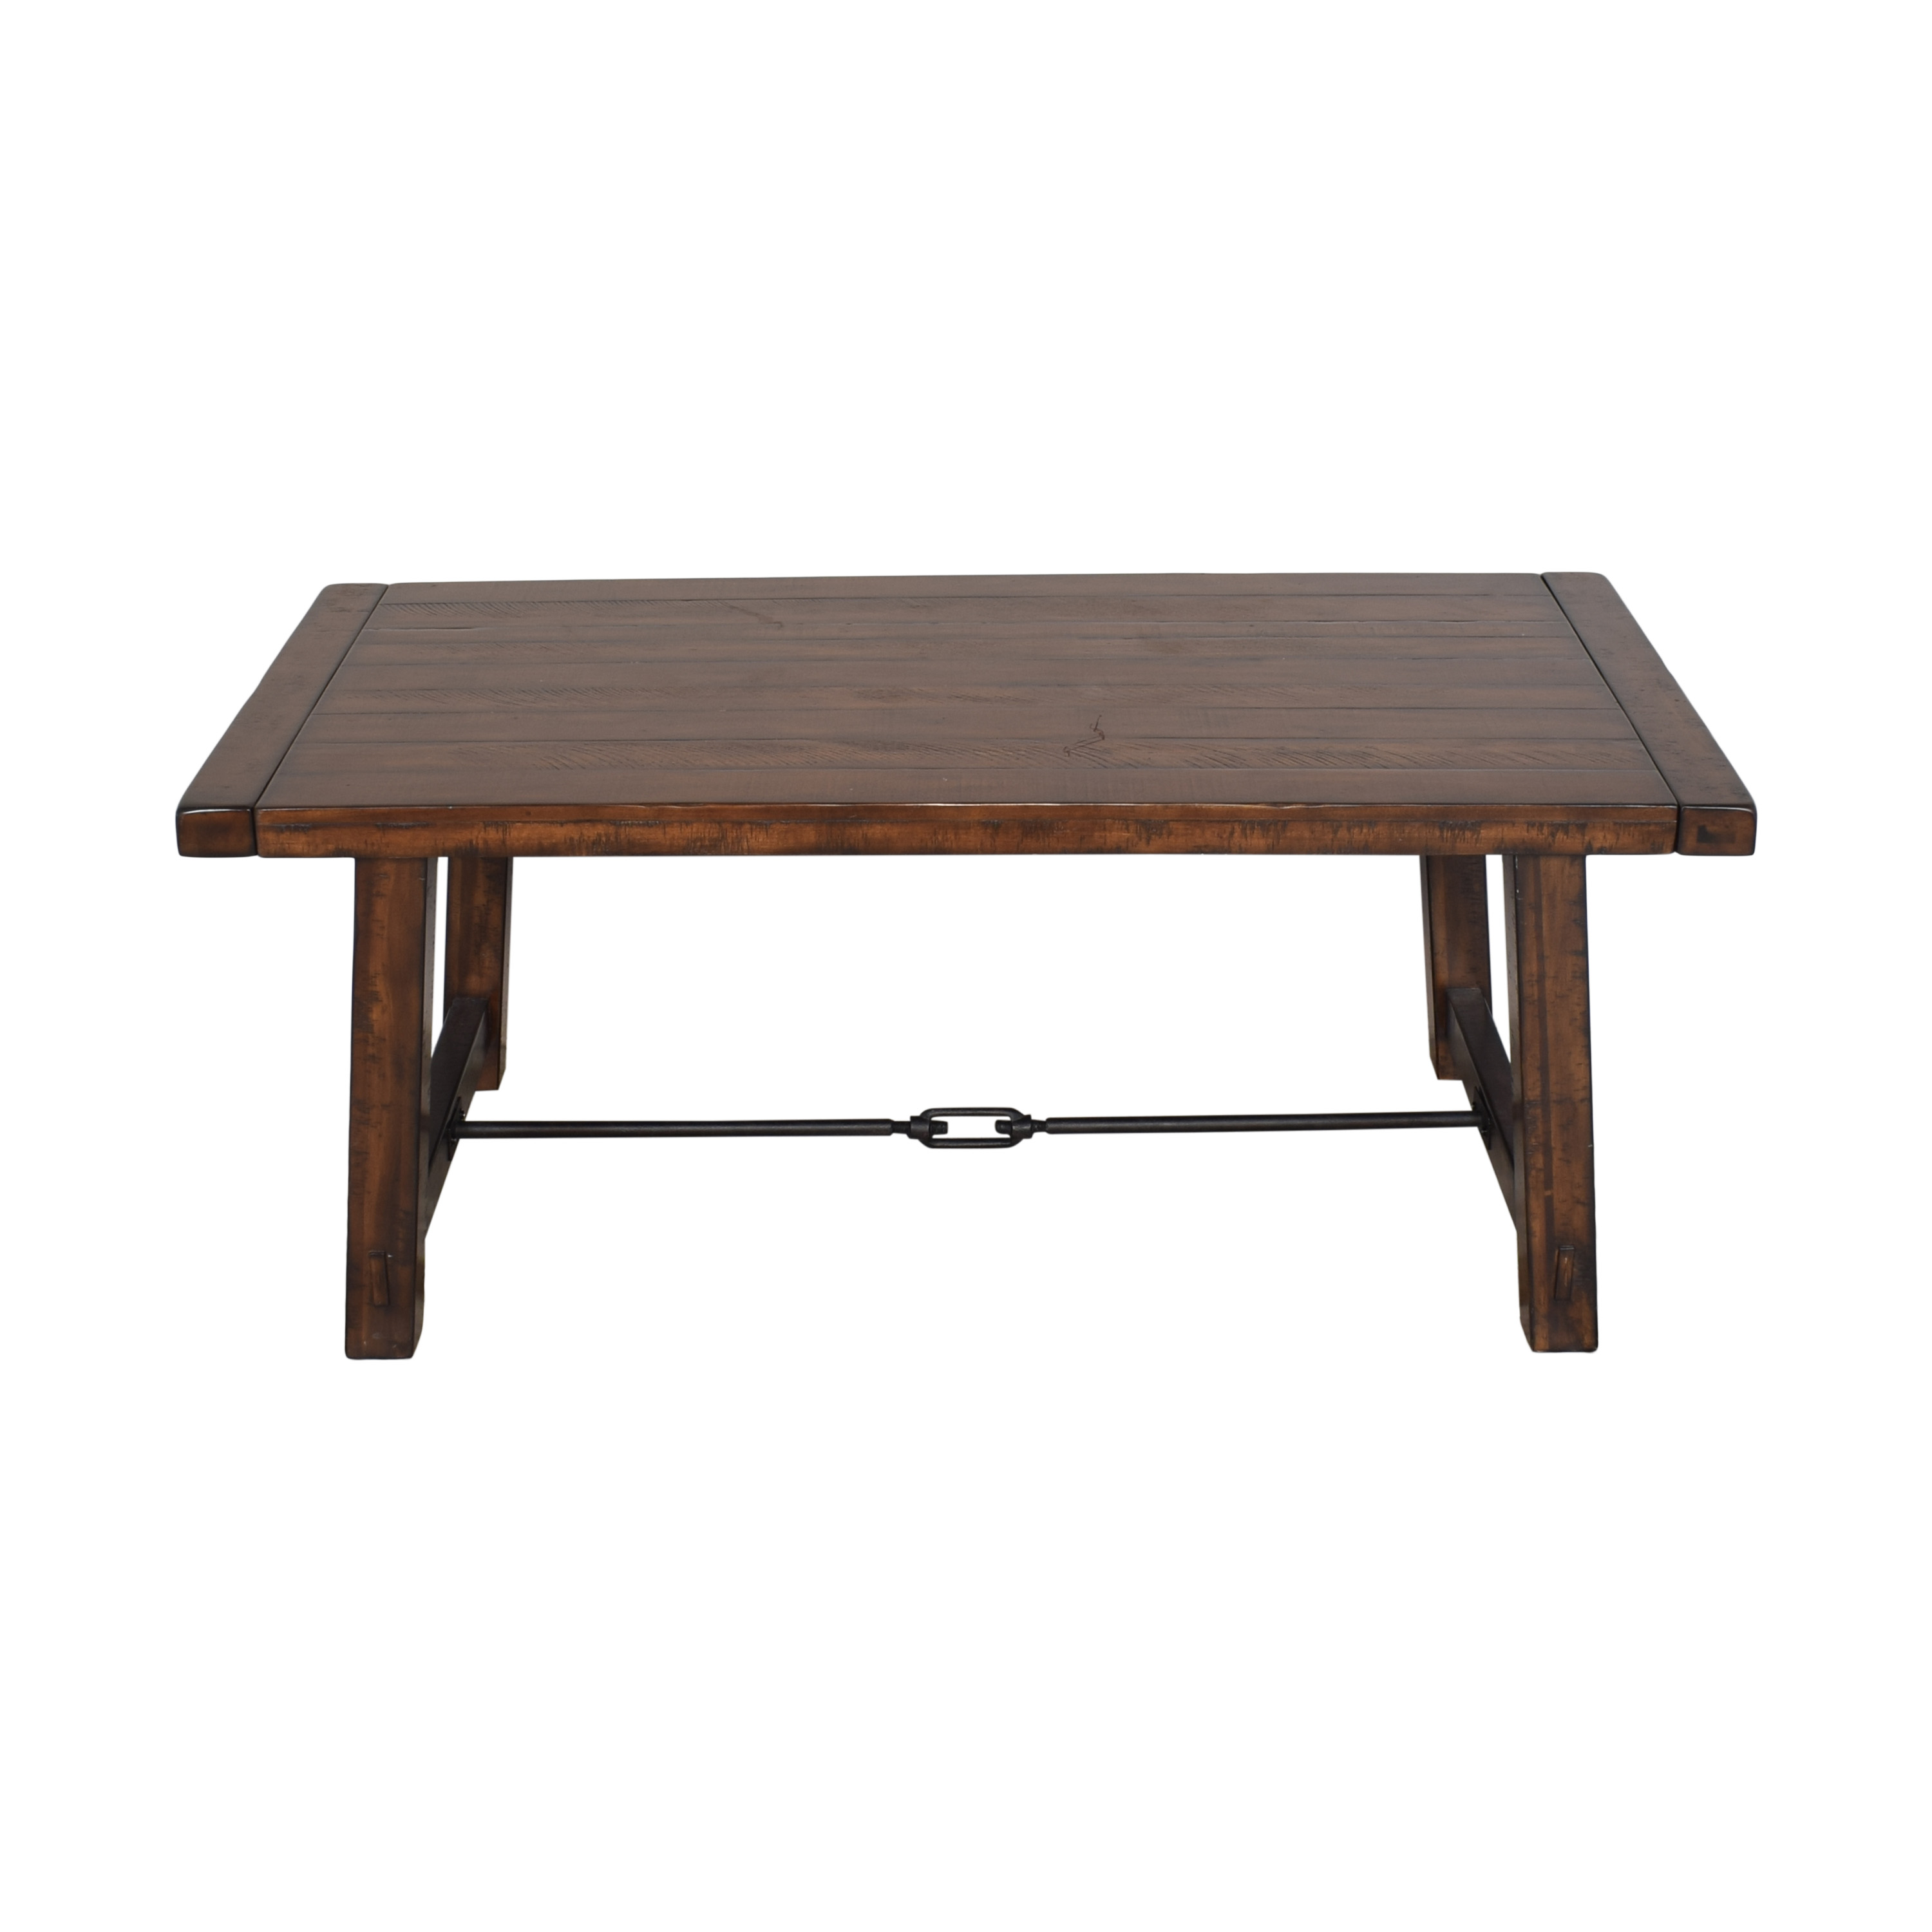 44 off pottery barn pottery barn benchwright extending dining table tables